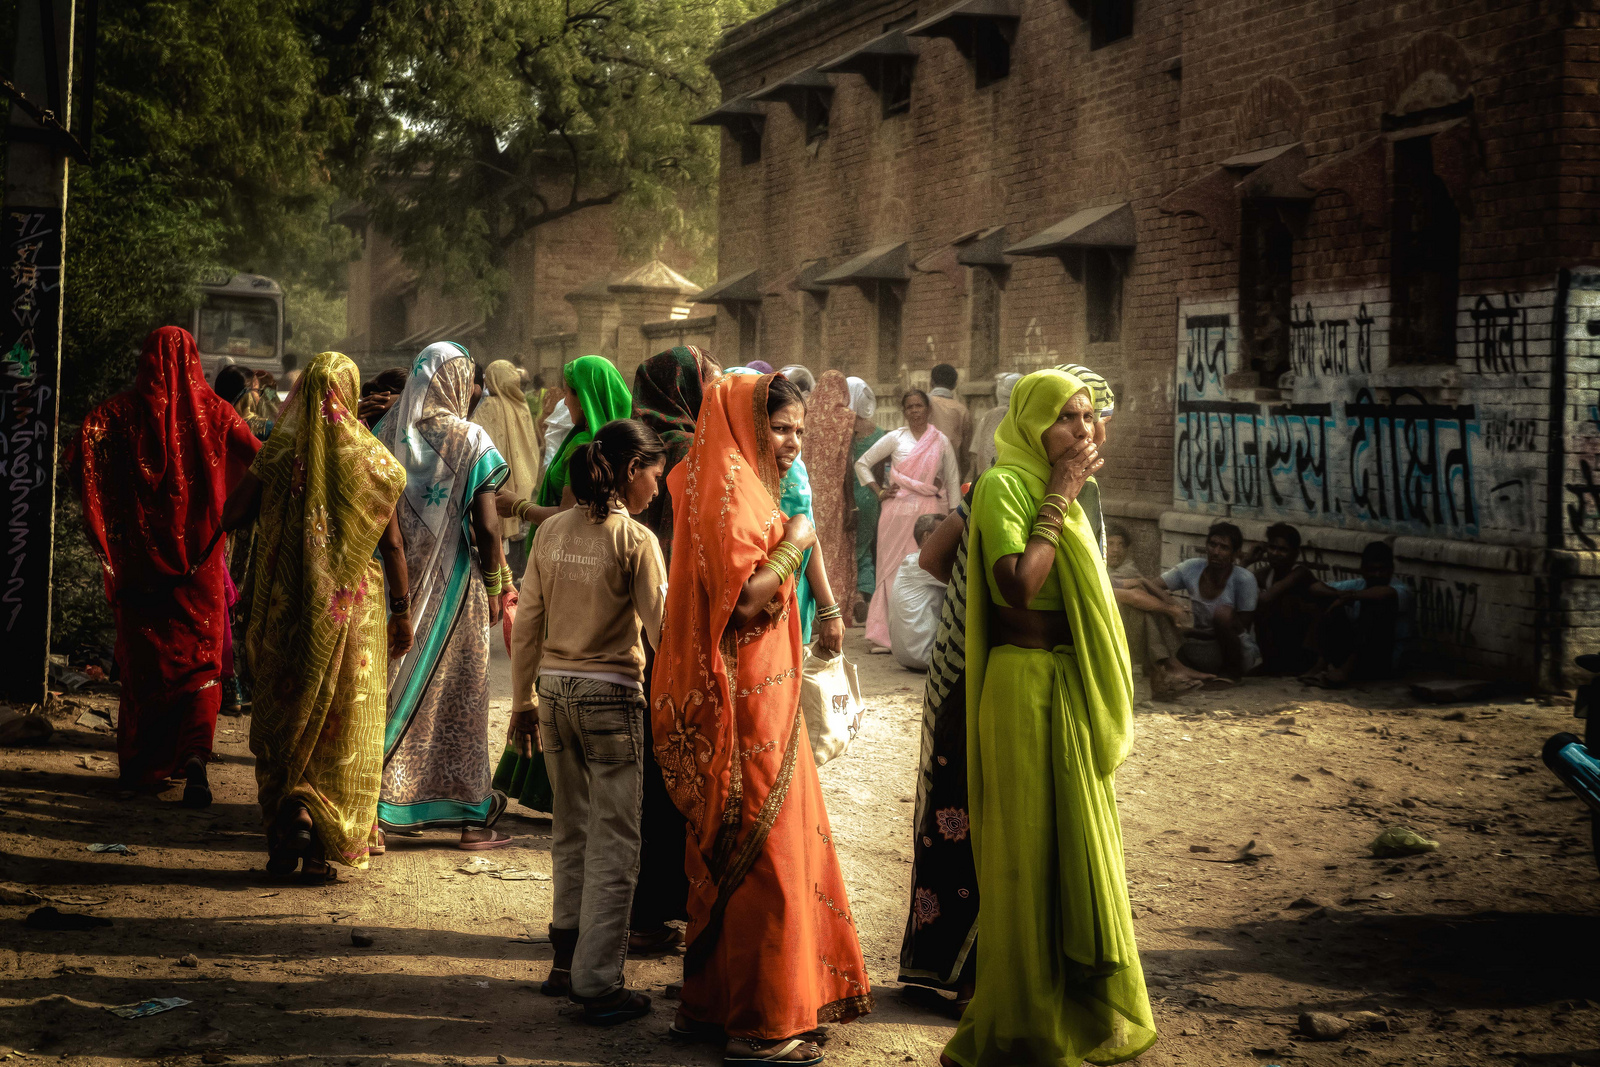 Agra street photography